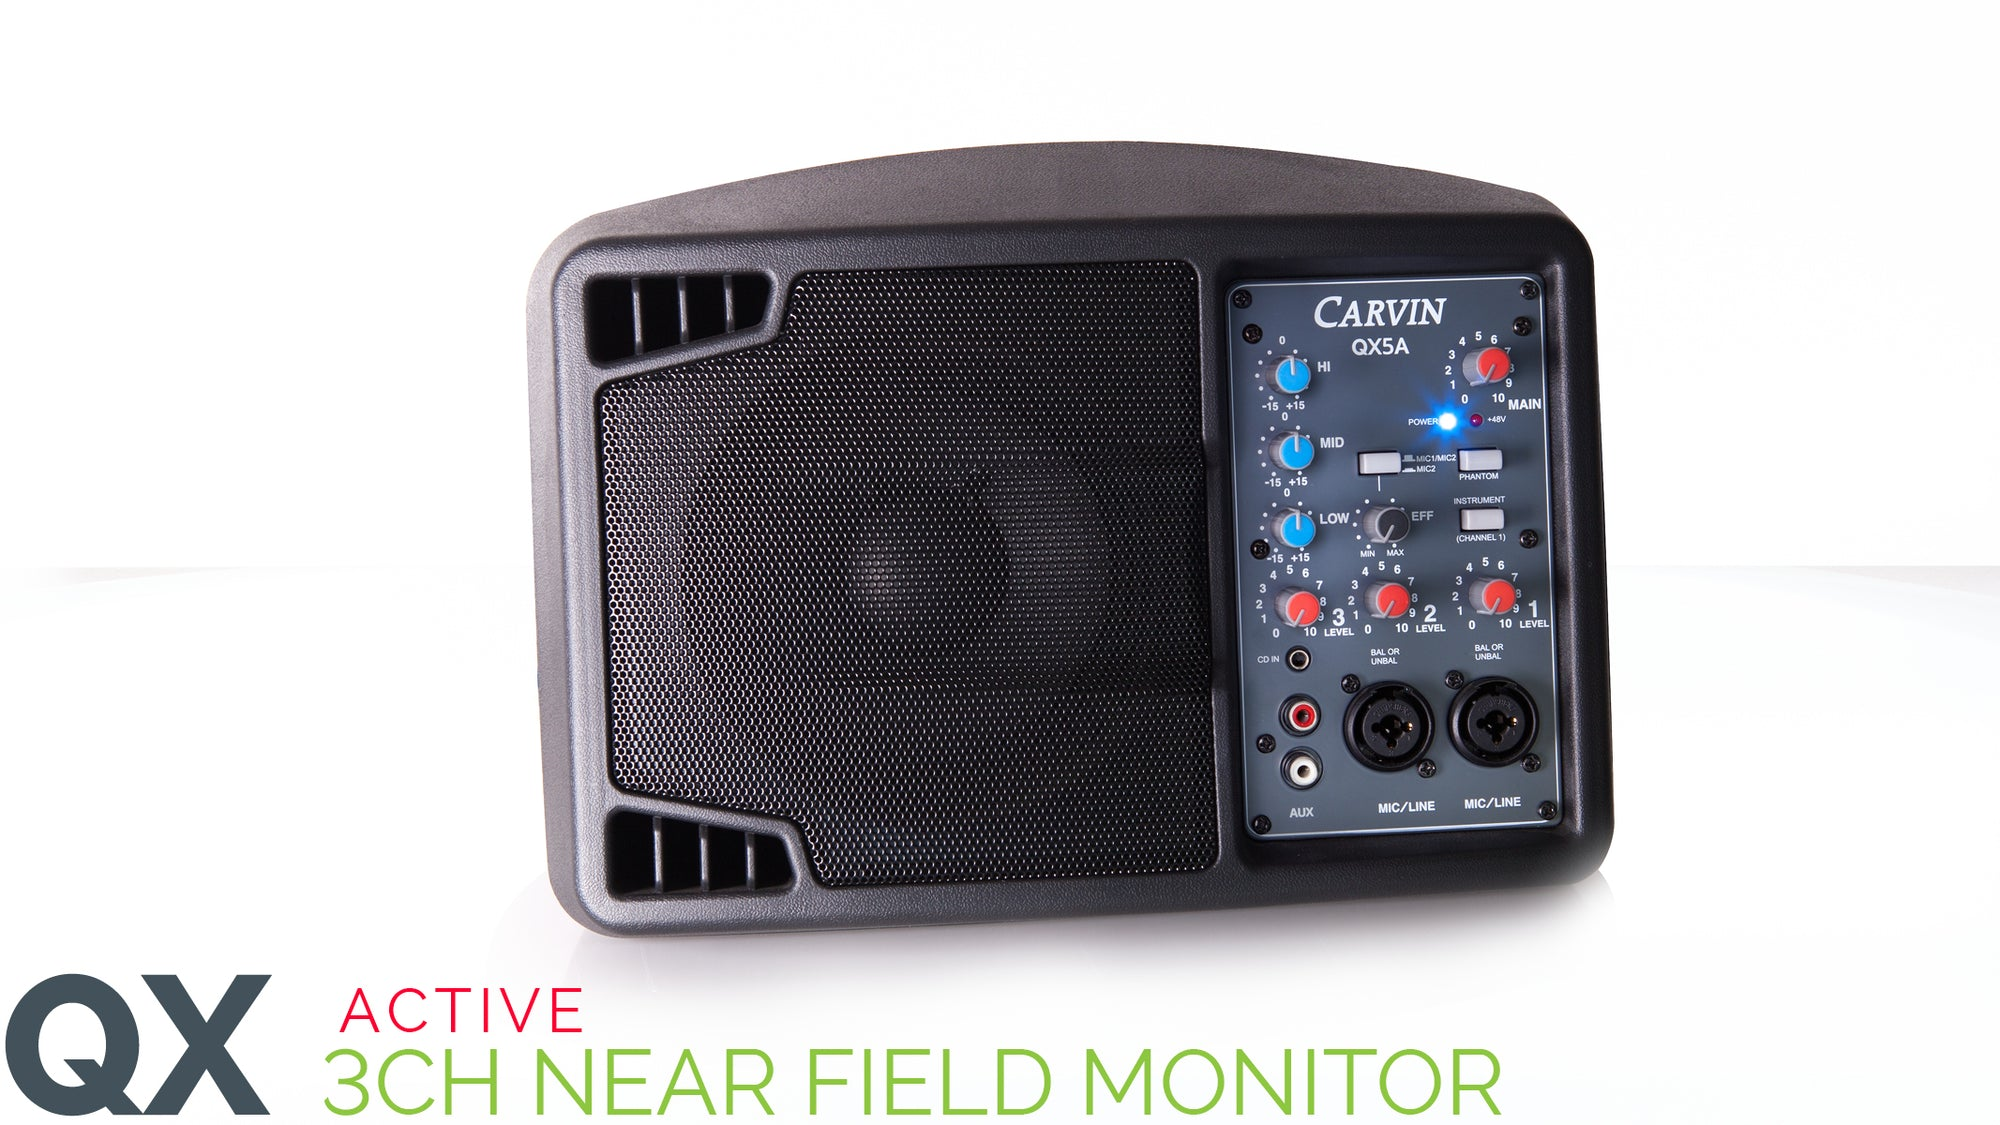 Carvin QX5A Active 3 Channel Hotspot Monitor with mixer